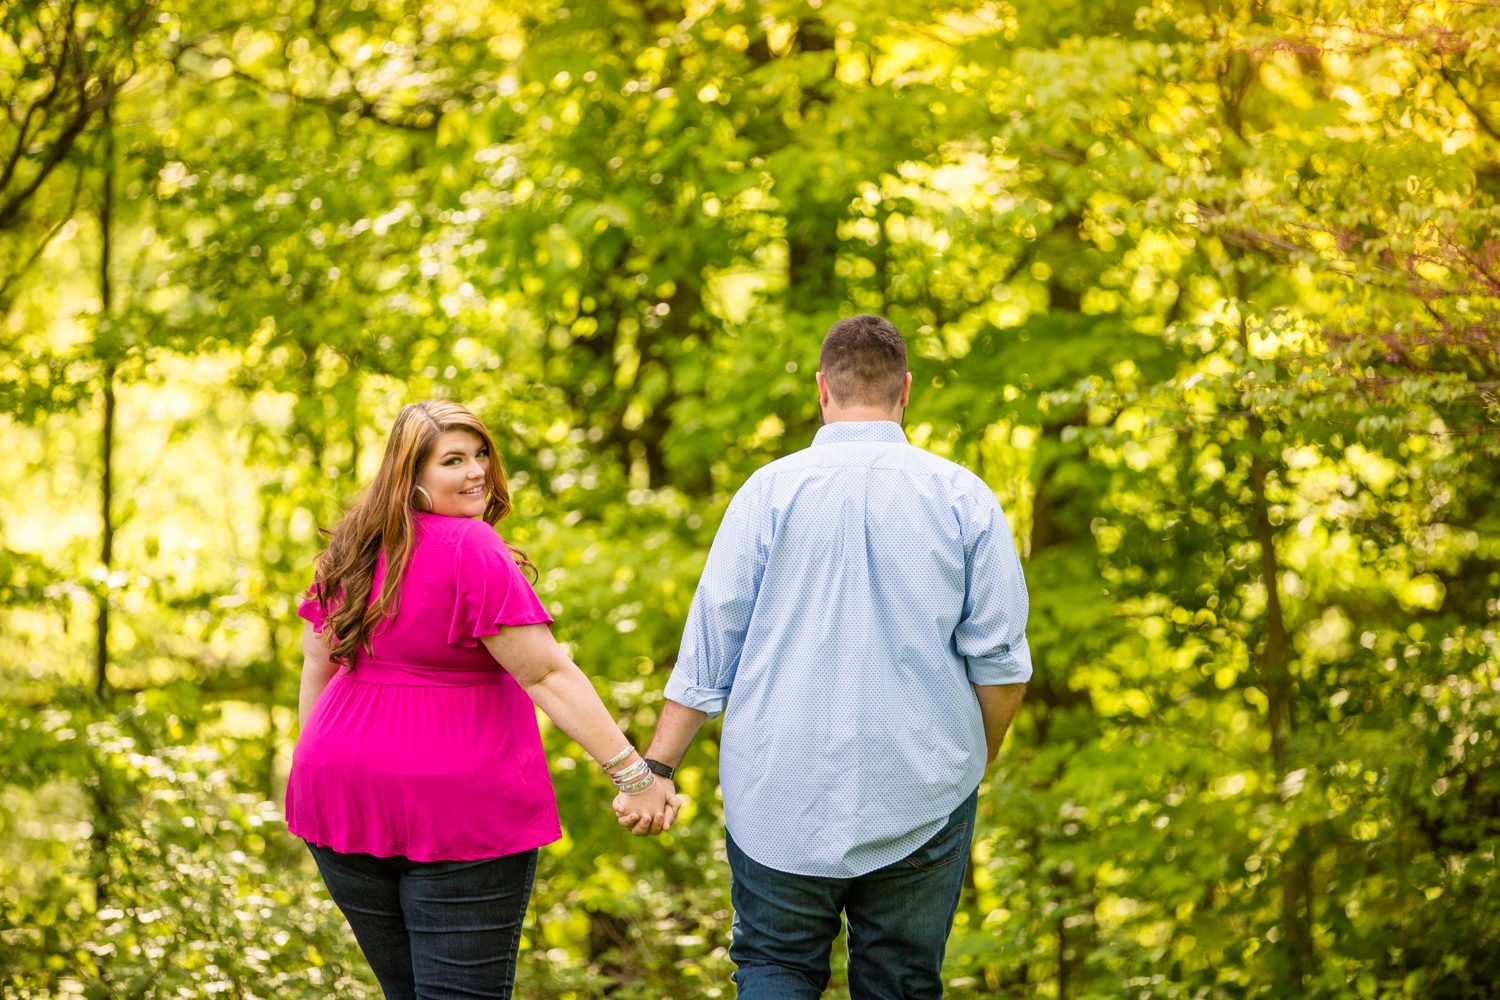 pittsburgh wedding photographer, pittsburgh engagement photographer, mcconnells mill engagement photos, mcconnells mill wedding photos, engagement photo ideas